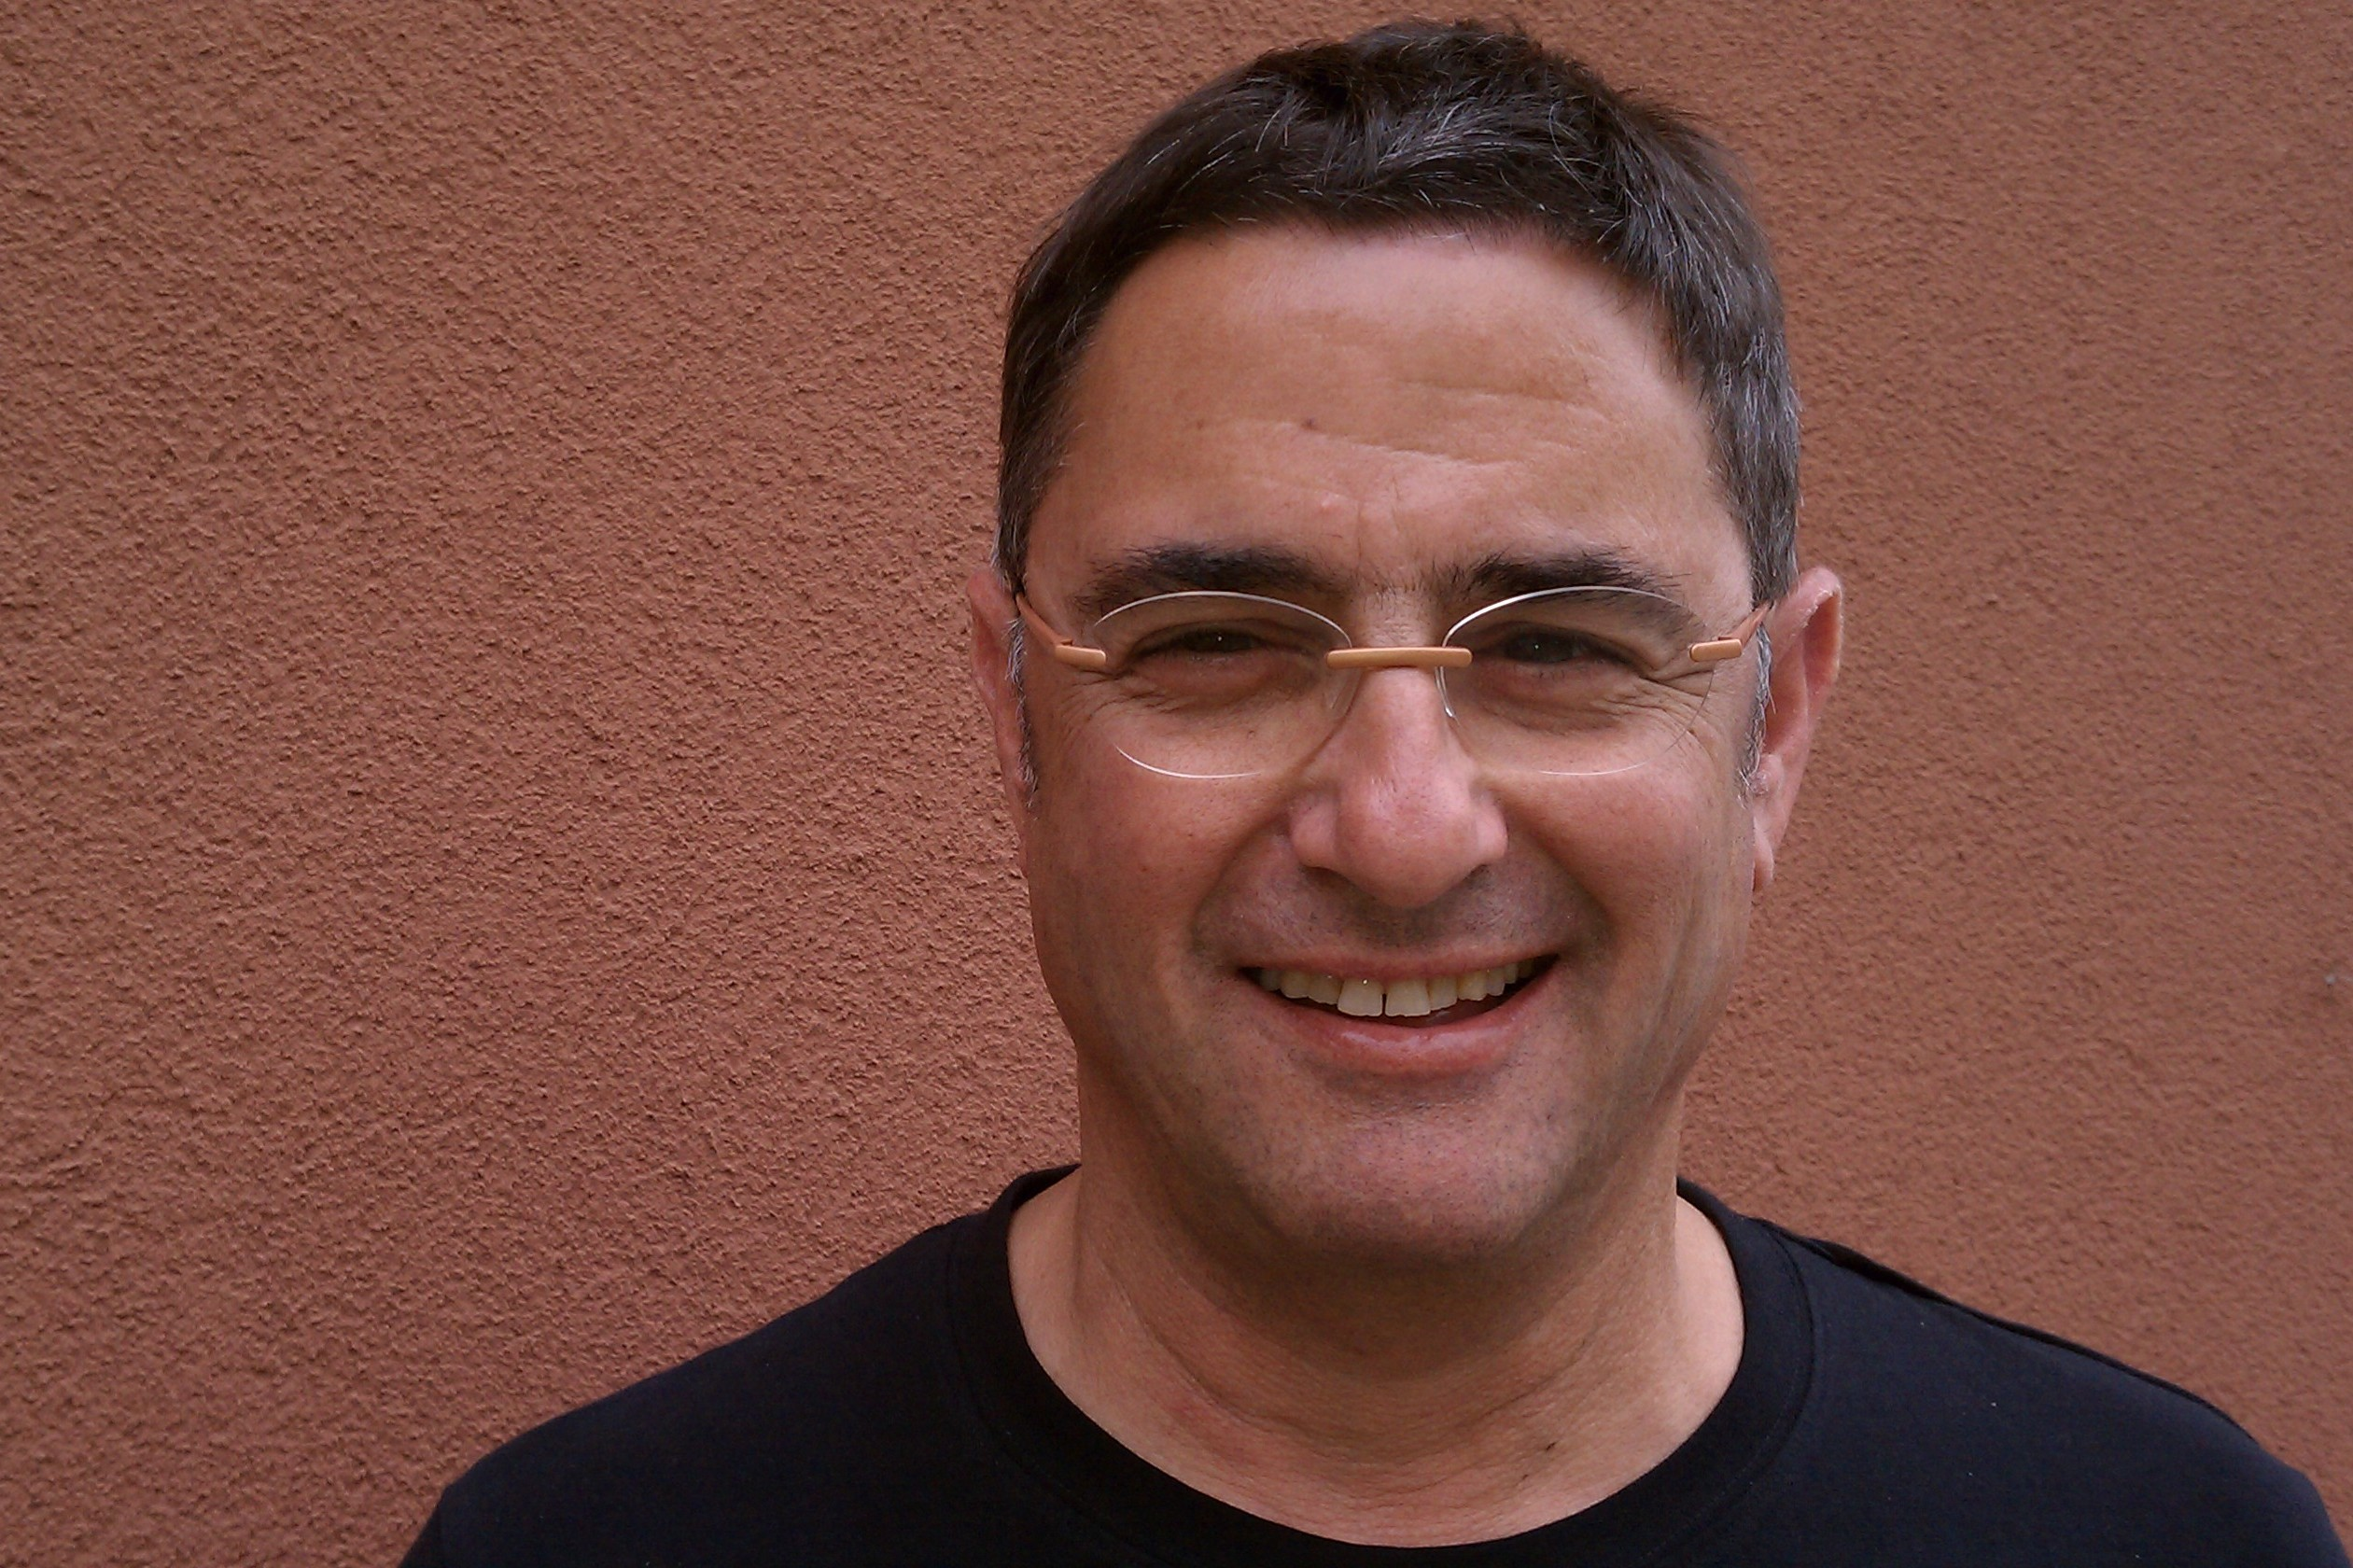 Ofer Bengal, Co-Founder & CEO of GarantiaData